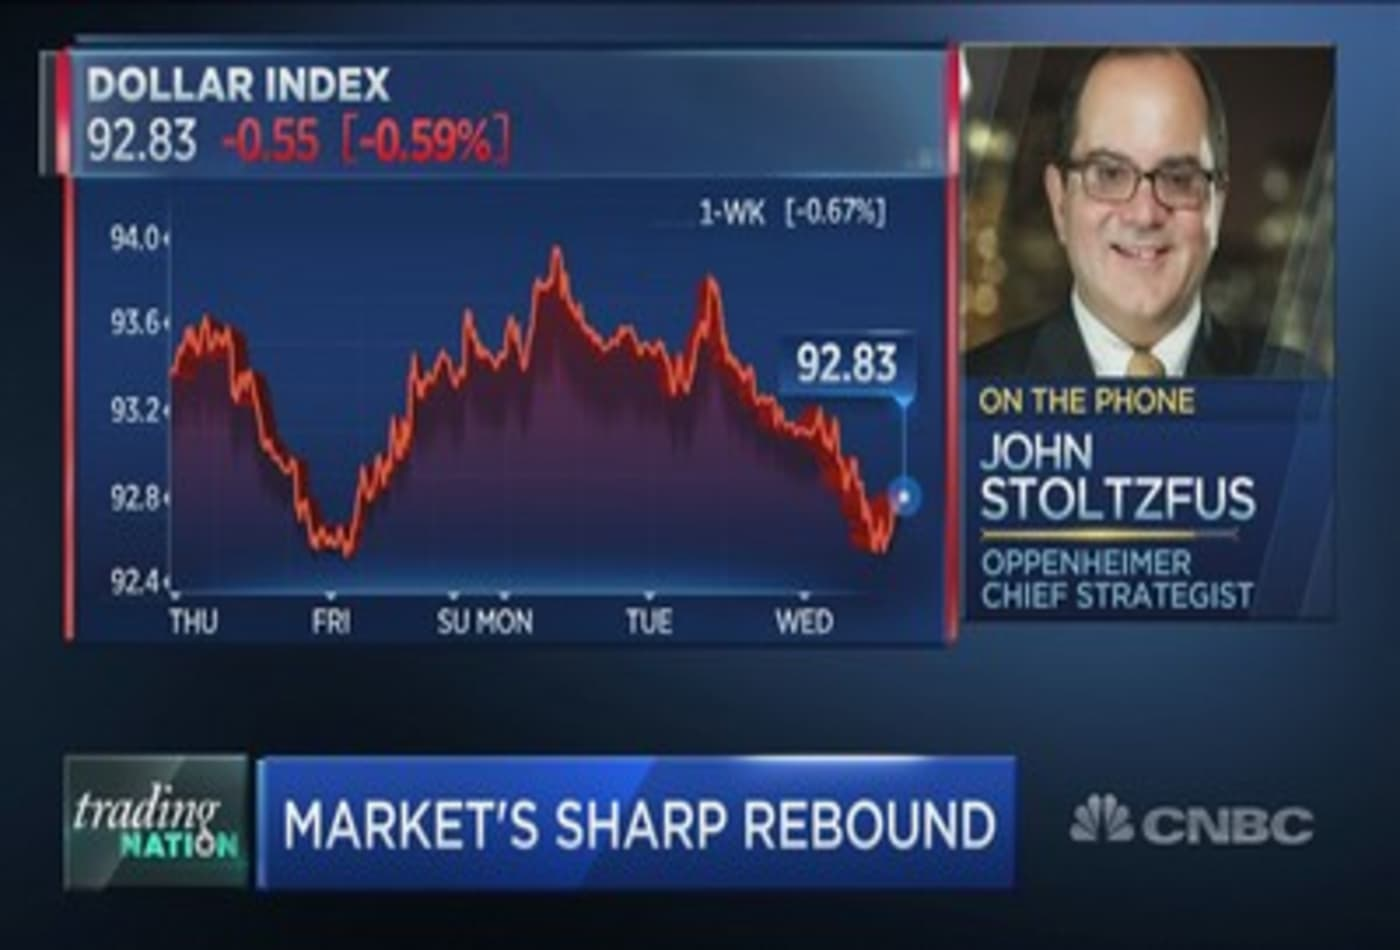 Trillions of dollars on sidelines will pour into the market post-coronavirus, Oppenheimer's John Stoltzfus predicts